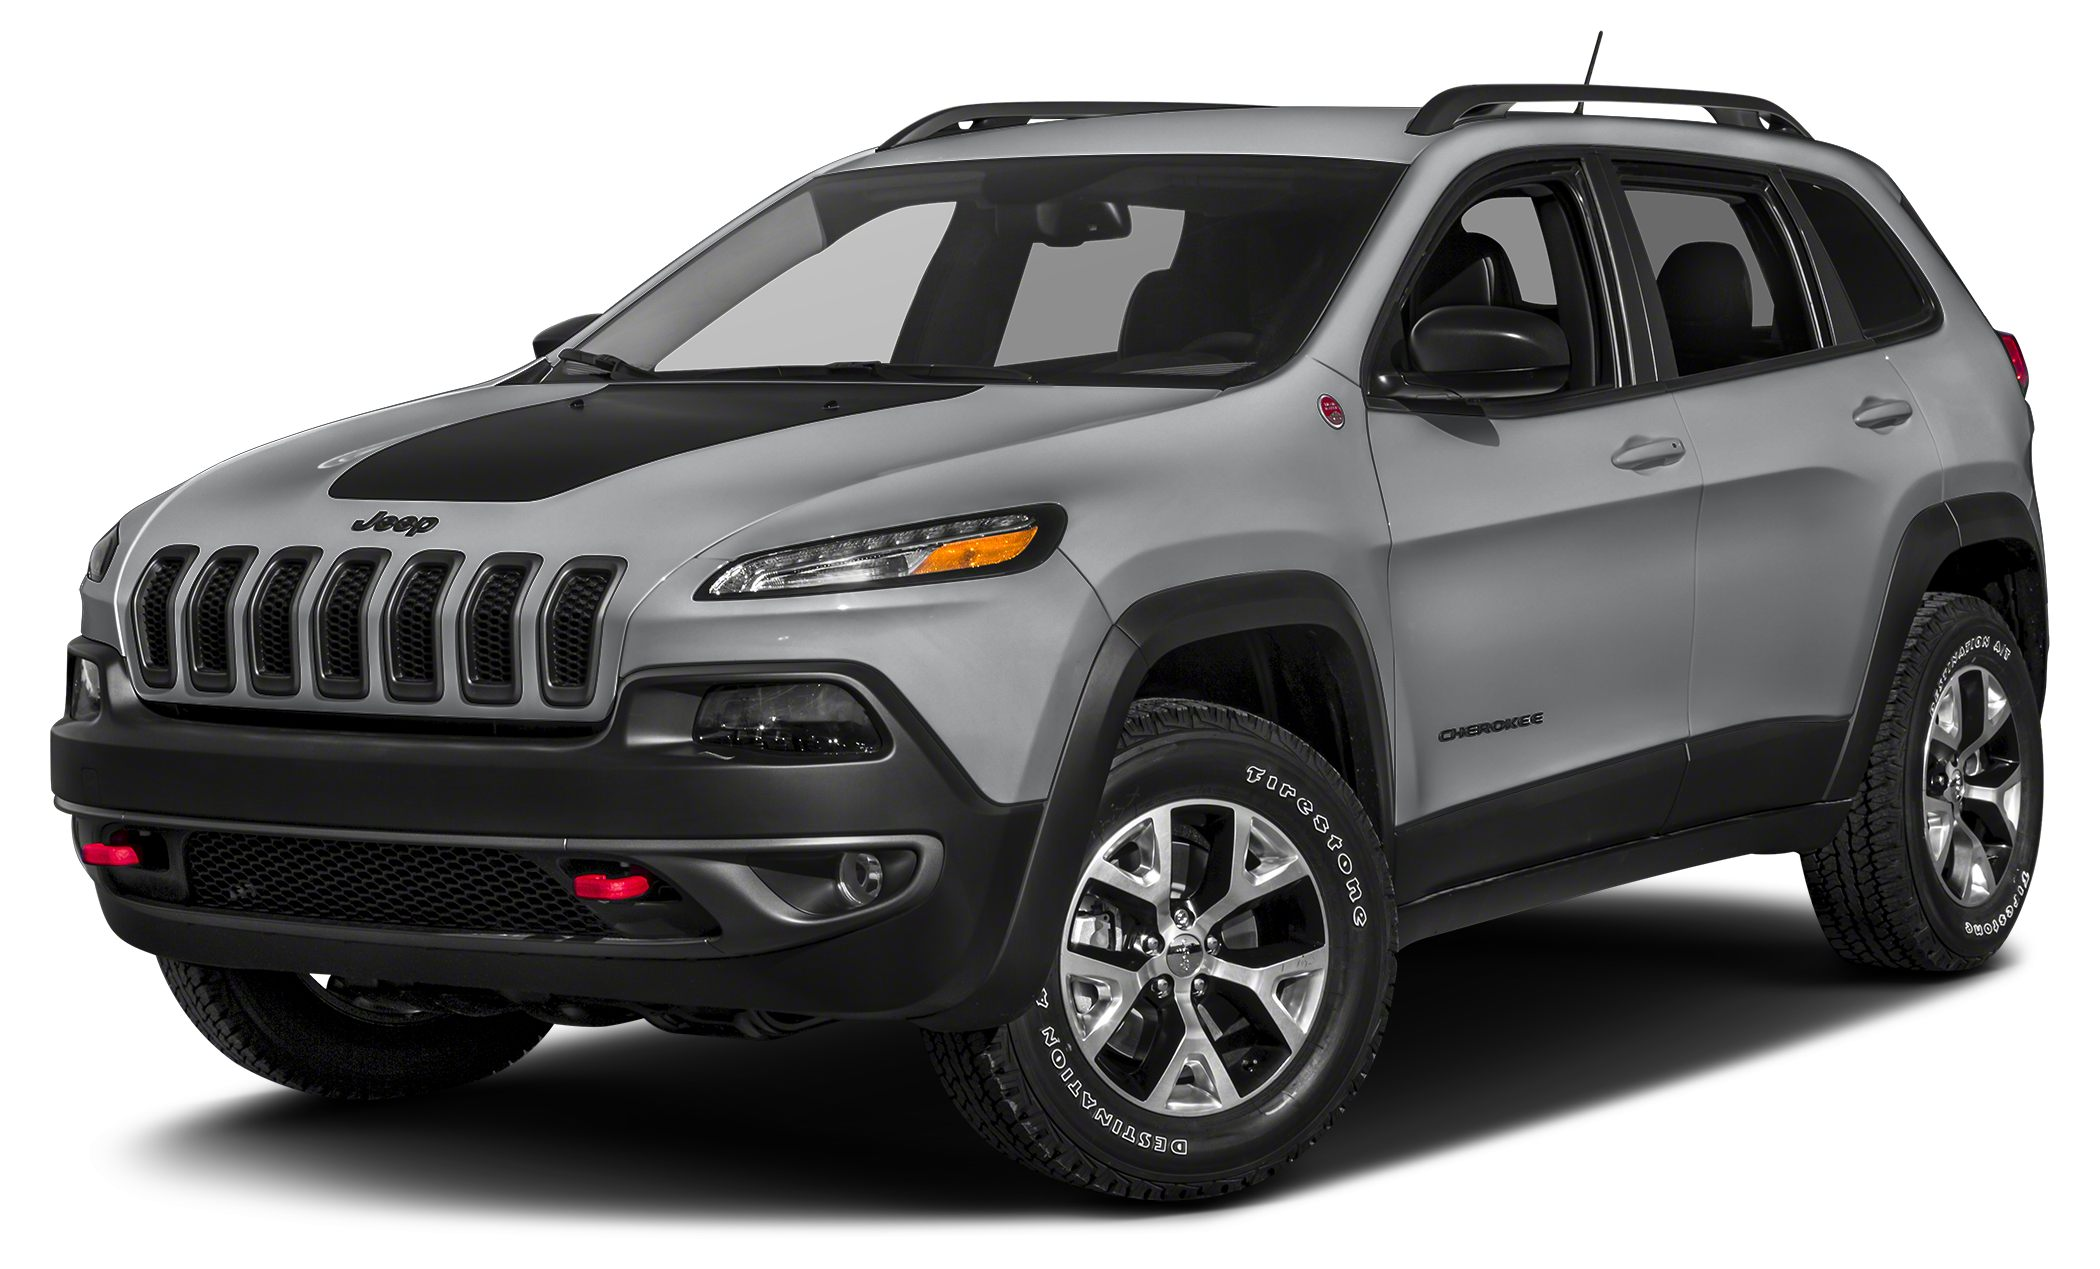 2014 Jeep Cherokee Trailhawk Miles 19635Color Billet Silver Clearcoat Metallic Stock 6868A VI